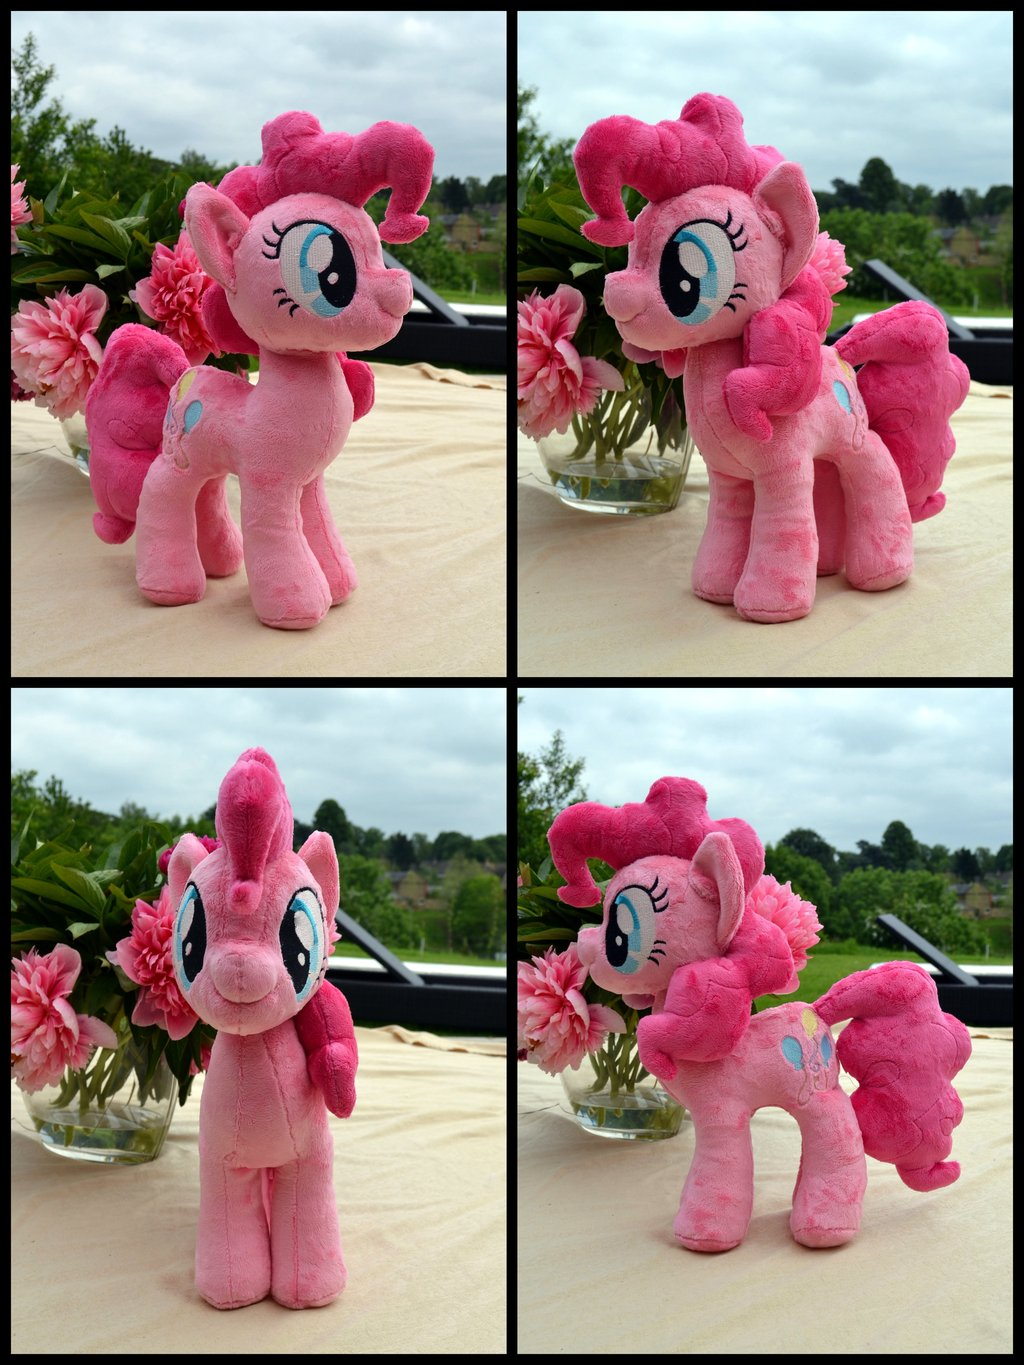 Pinkie Pie Plush by PulsefireKitten greeted me this morning